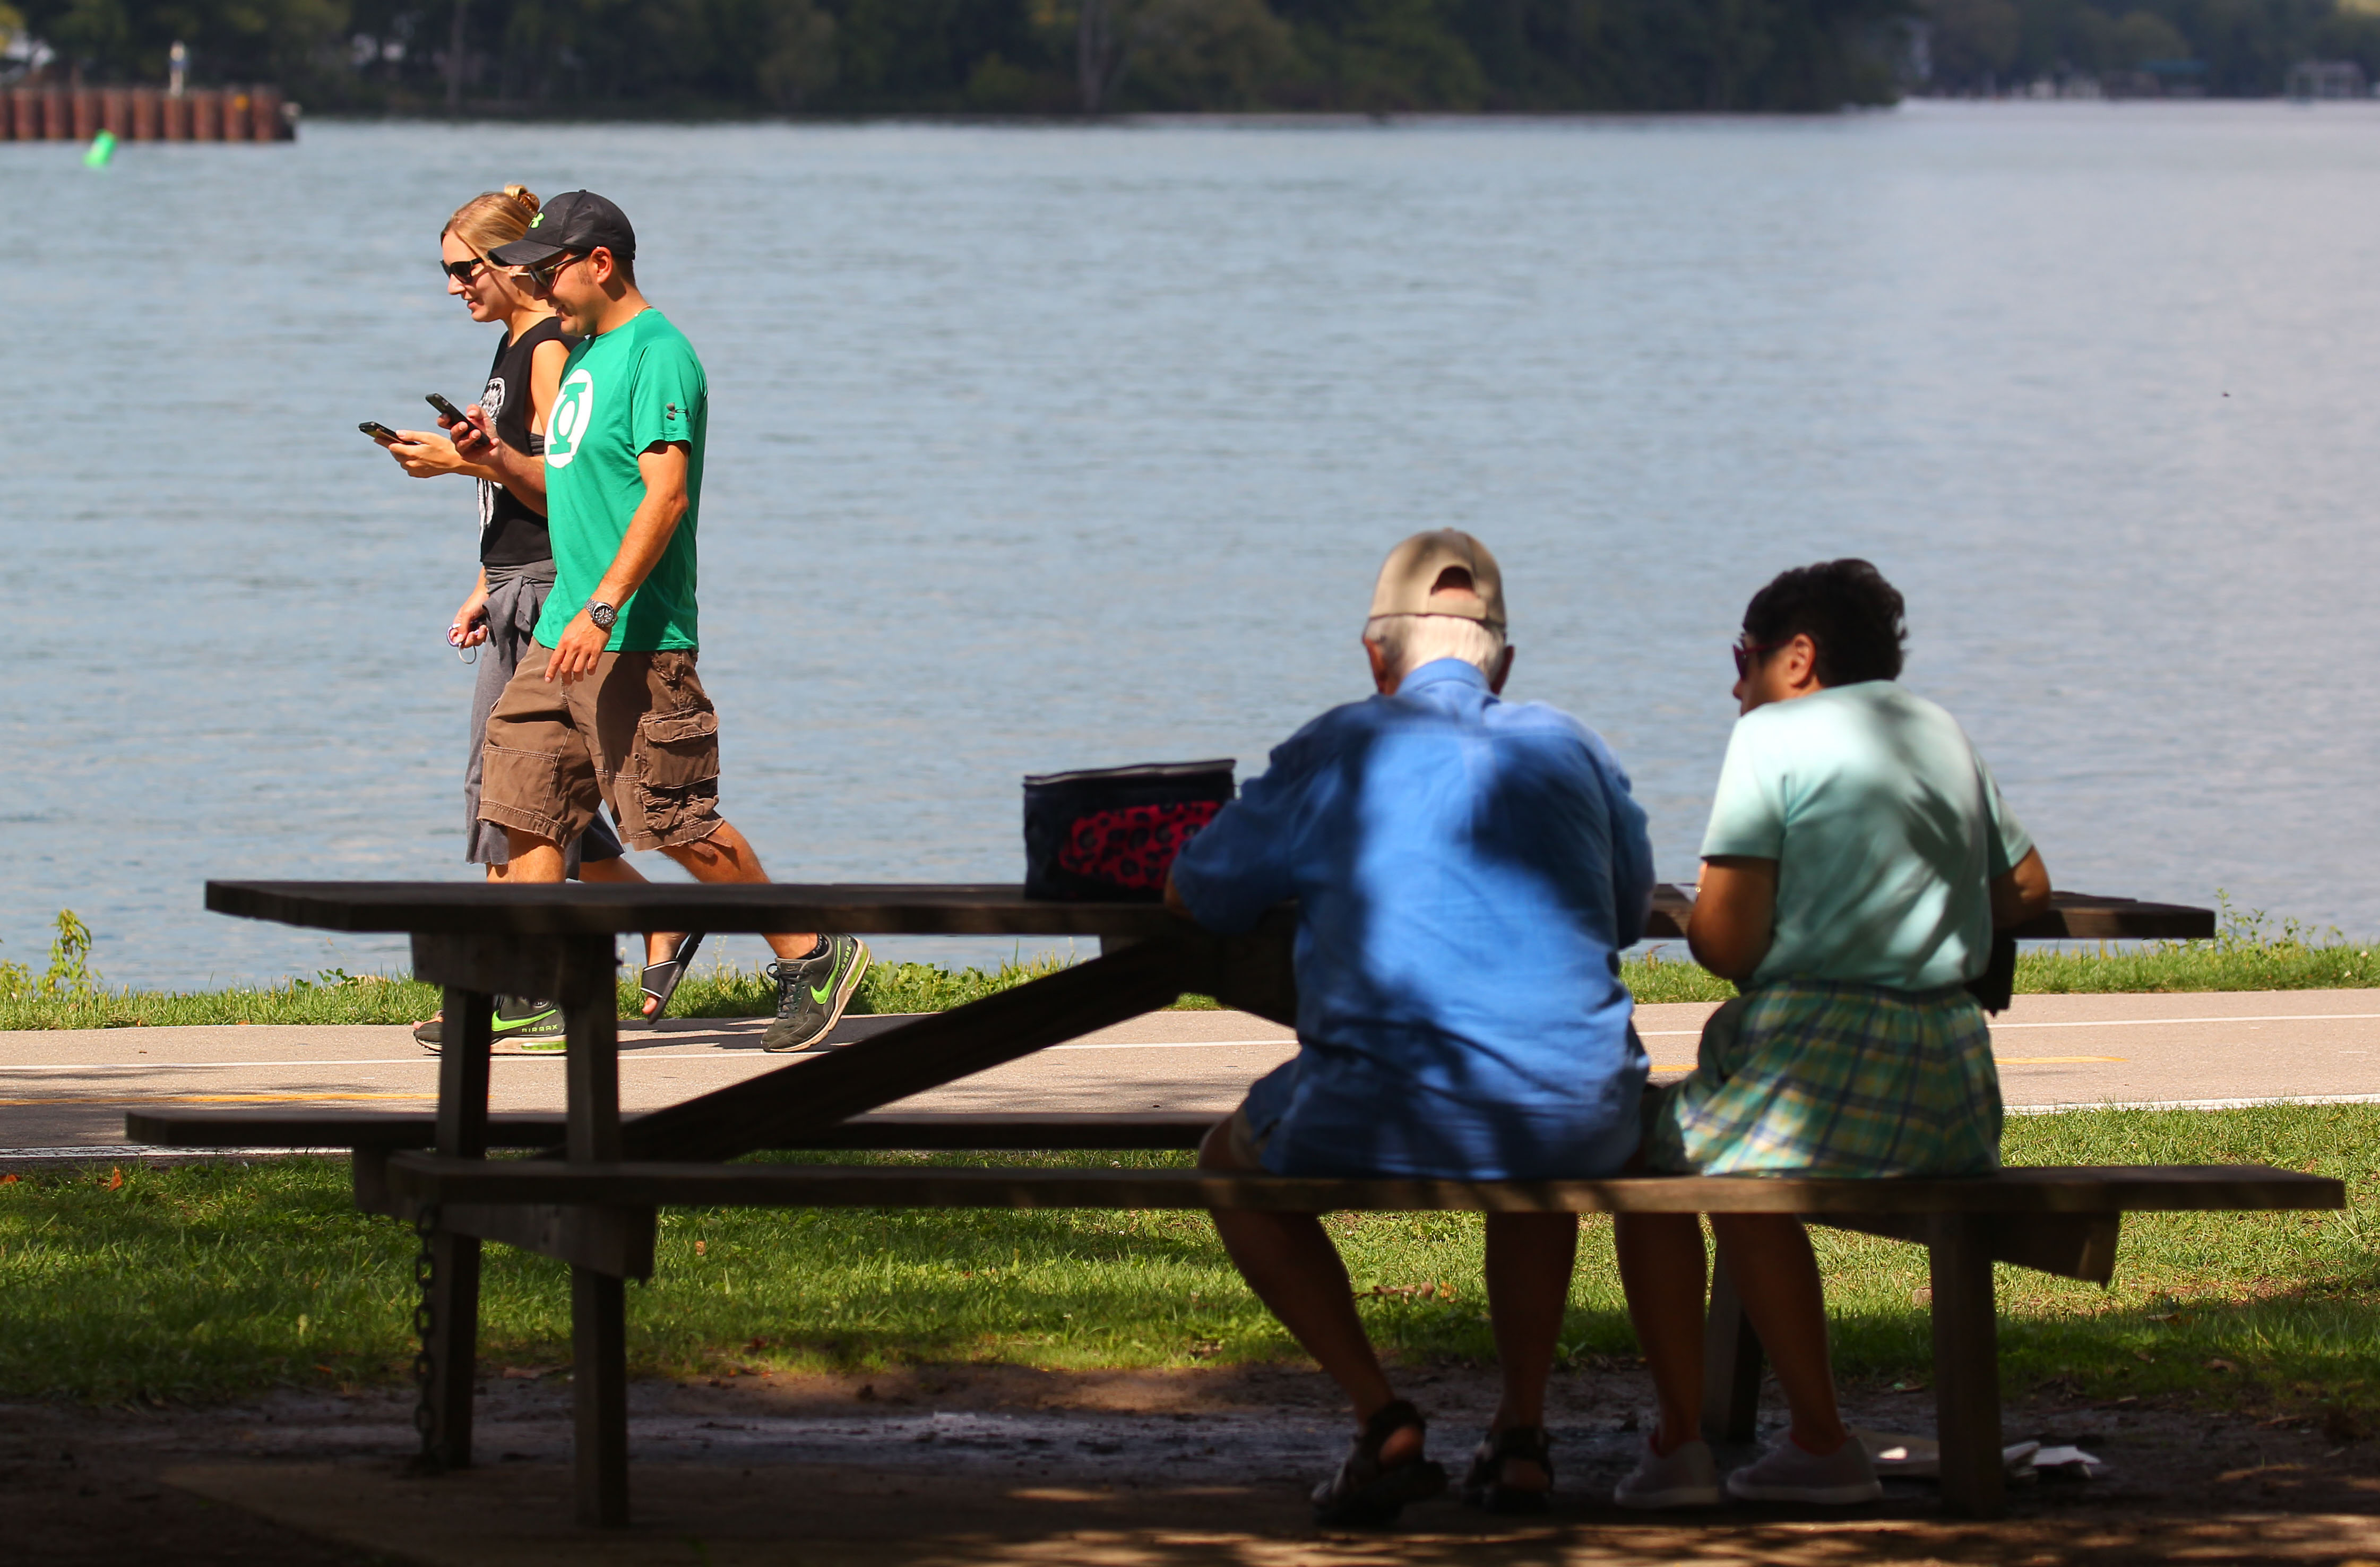 People enjoy lunch and a walk through Niawanda park in Tonawanda on another 80-degree day in September.  (Mark Mulville/Buffalo News)